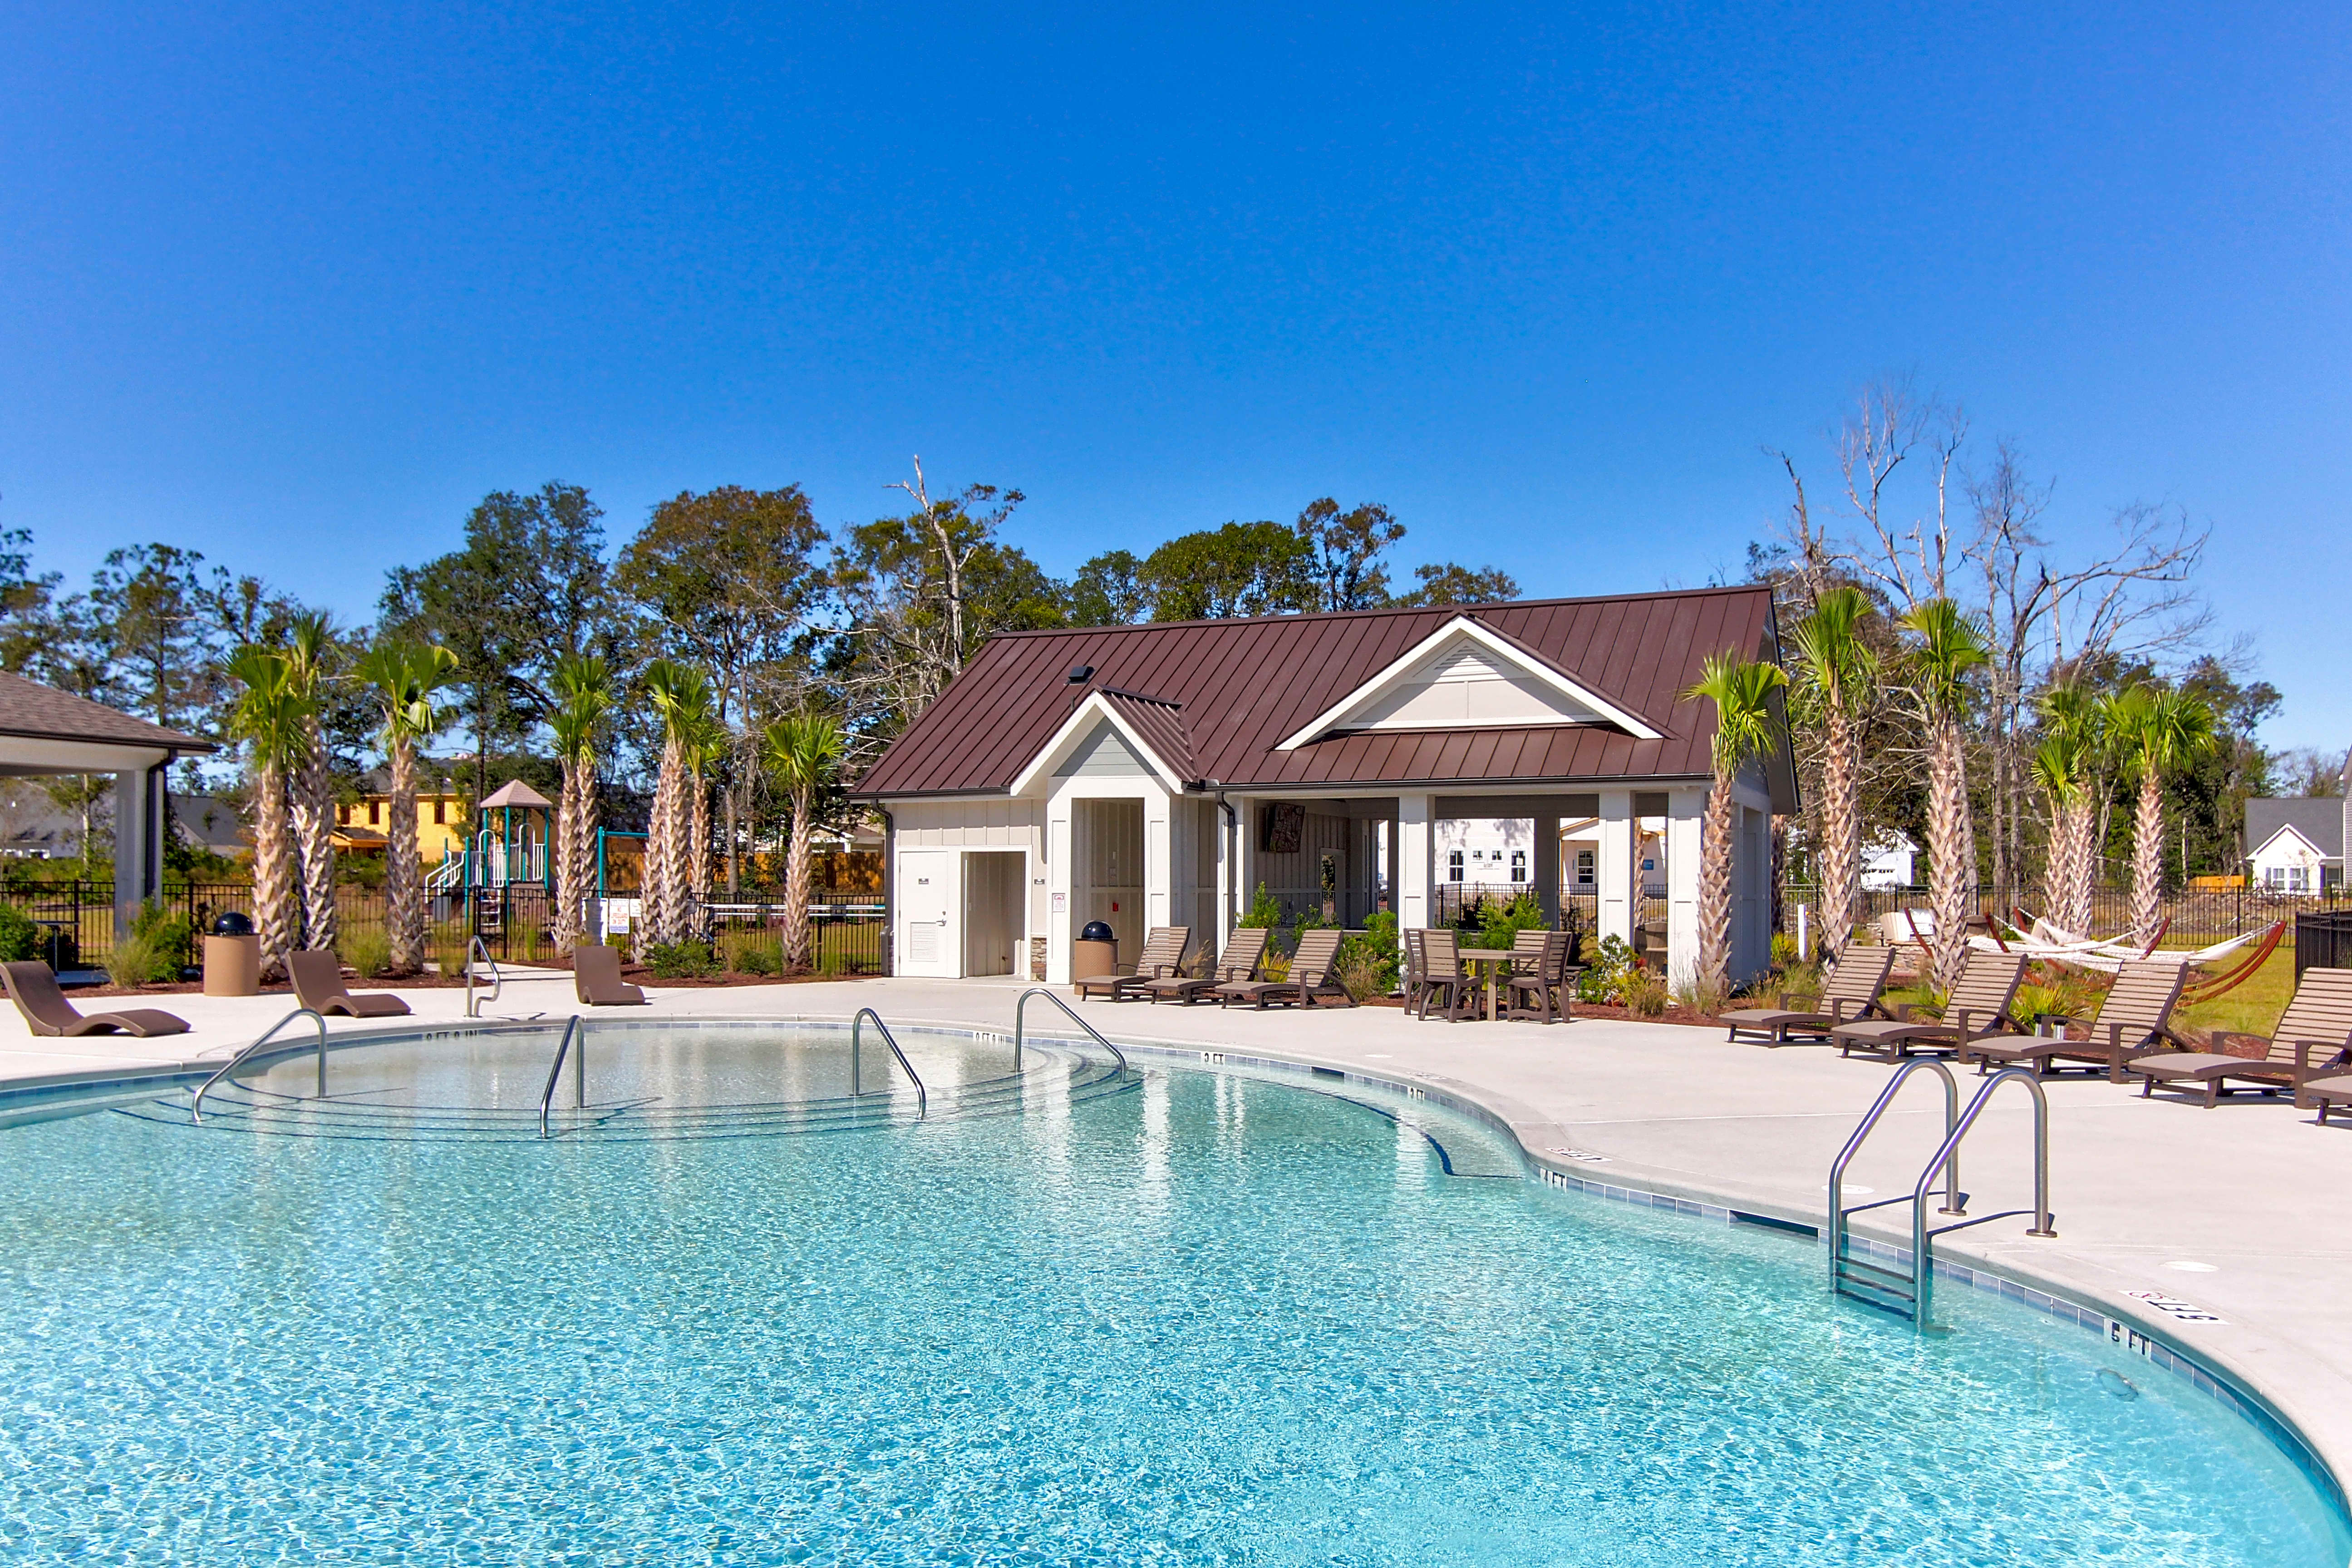 Apartments Near UNCW Sparrows Bend for University of North Carolina-Wilmington Students in Wilmington, NC